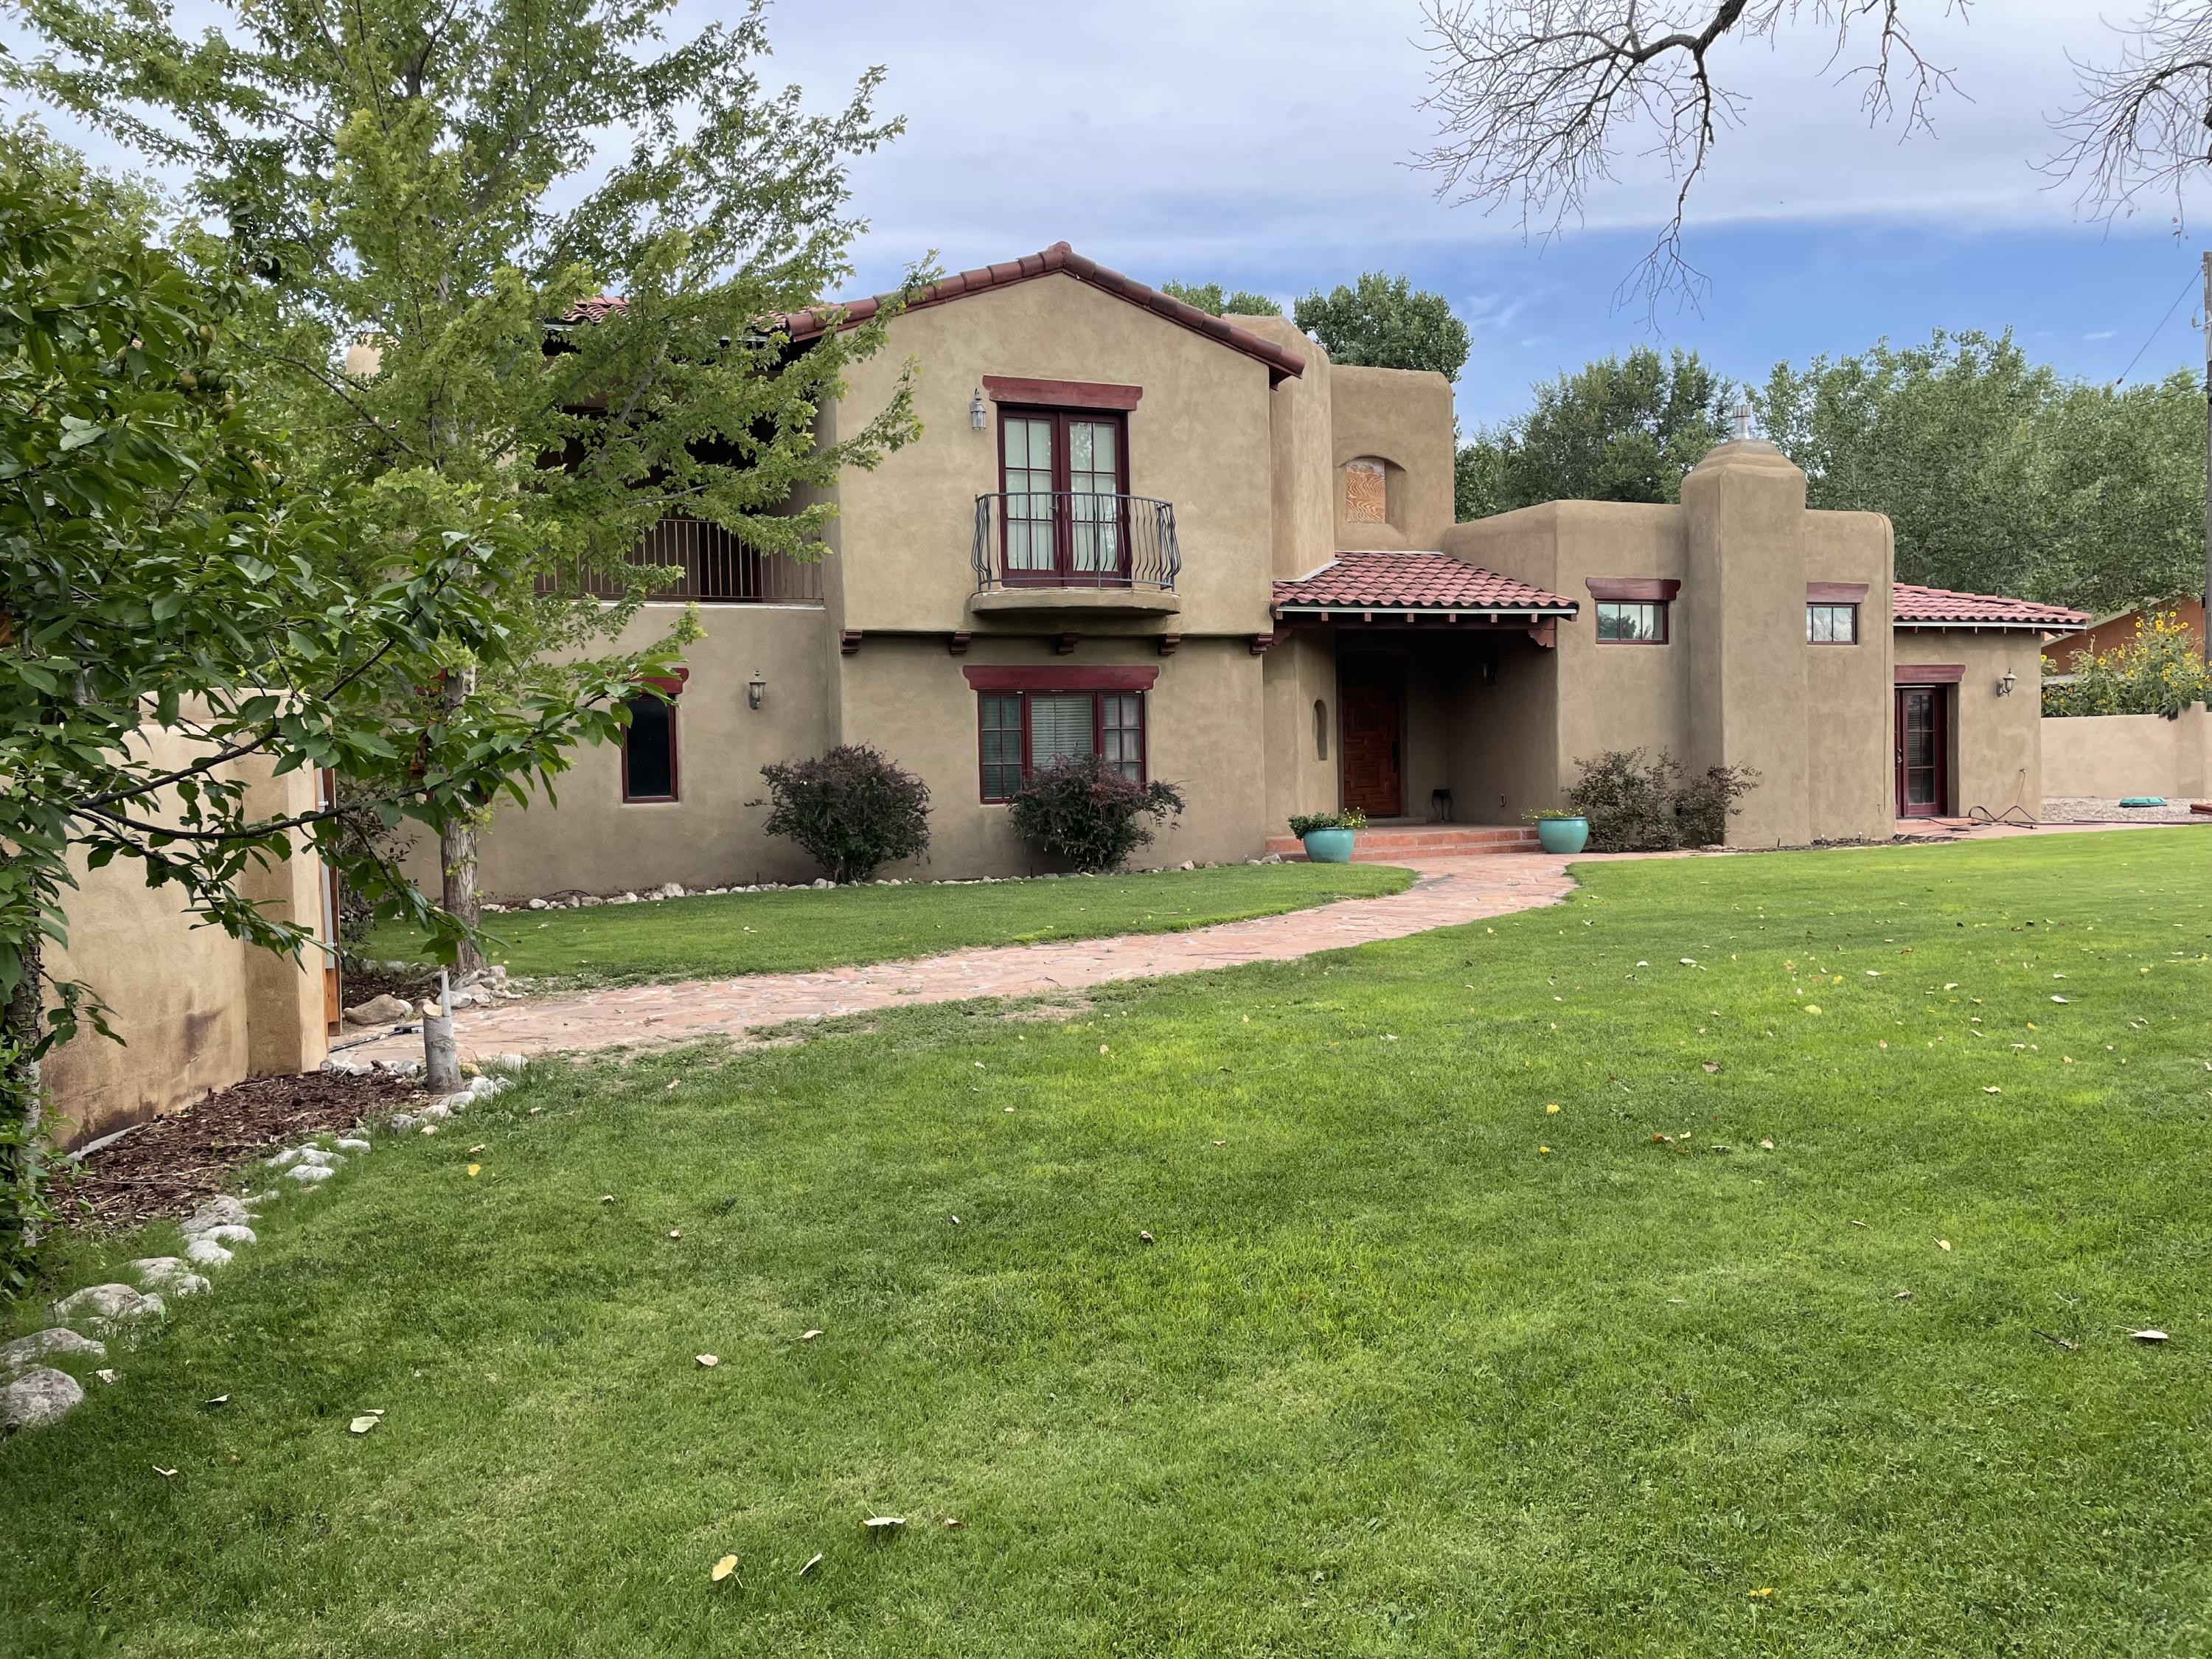 Beautiful Tuscan style home in the green belt of Corrales. Close to tennis courts, Farmers' Market and the Bosque. Lovely bright floor plan with newly remodeled upstairs bath and master shower, new granite countertops in kitchen, custom cabinetry, new stainless cooktop and range hood. Living area adjoining kitchen has gas log kiva fireplace. Lots of possible uses for the upstairs flex space. The front yard resembles a small park with peach, cherry and pear trees along with raised garden beds all on automated sprinkler and/or drip irrigation. Extra large 2 car garage with room for work area and storage. Garage floor has epoxy coating. There is also over 400 sq. ft. of outdoor patio space.